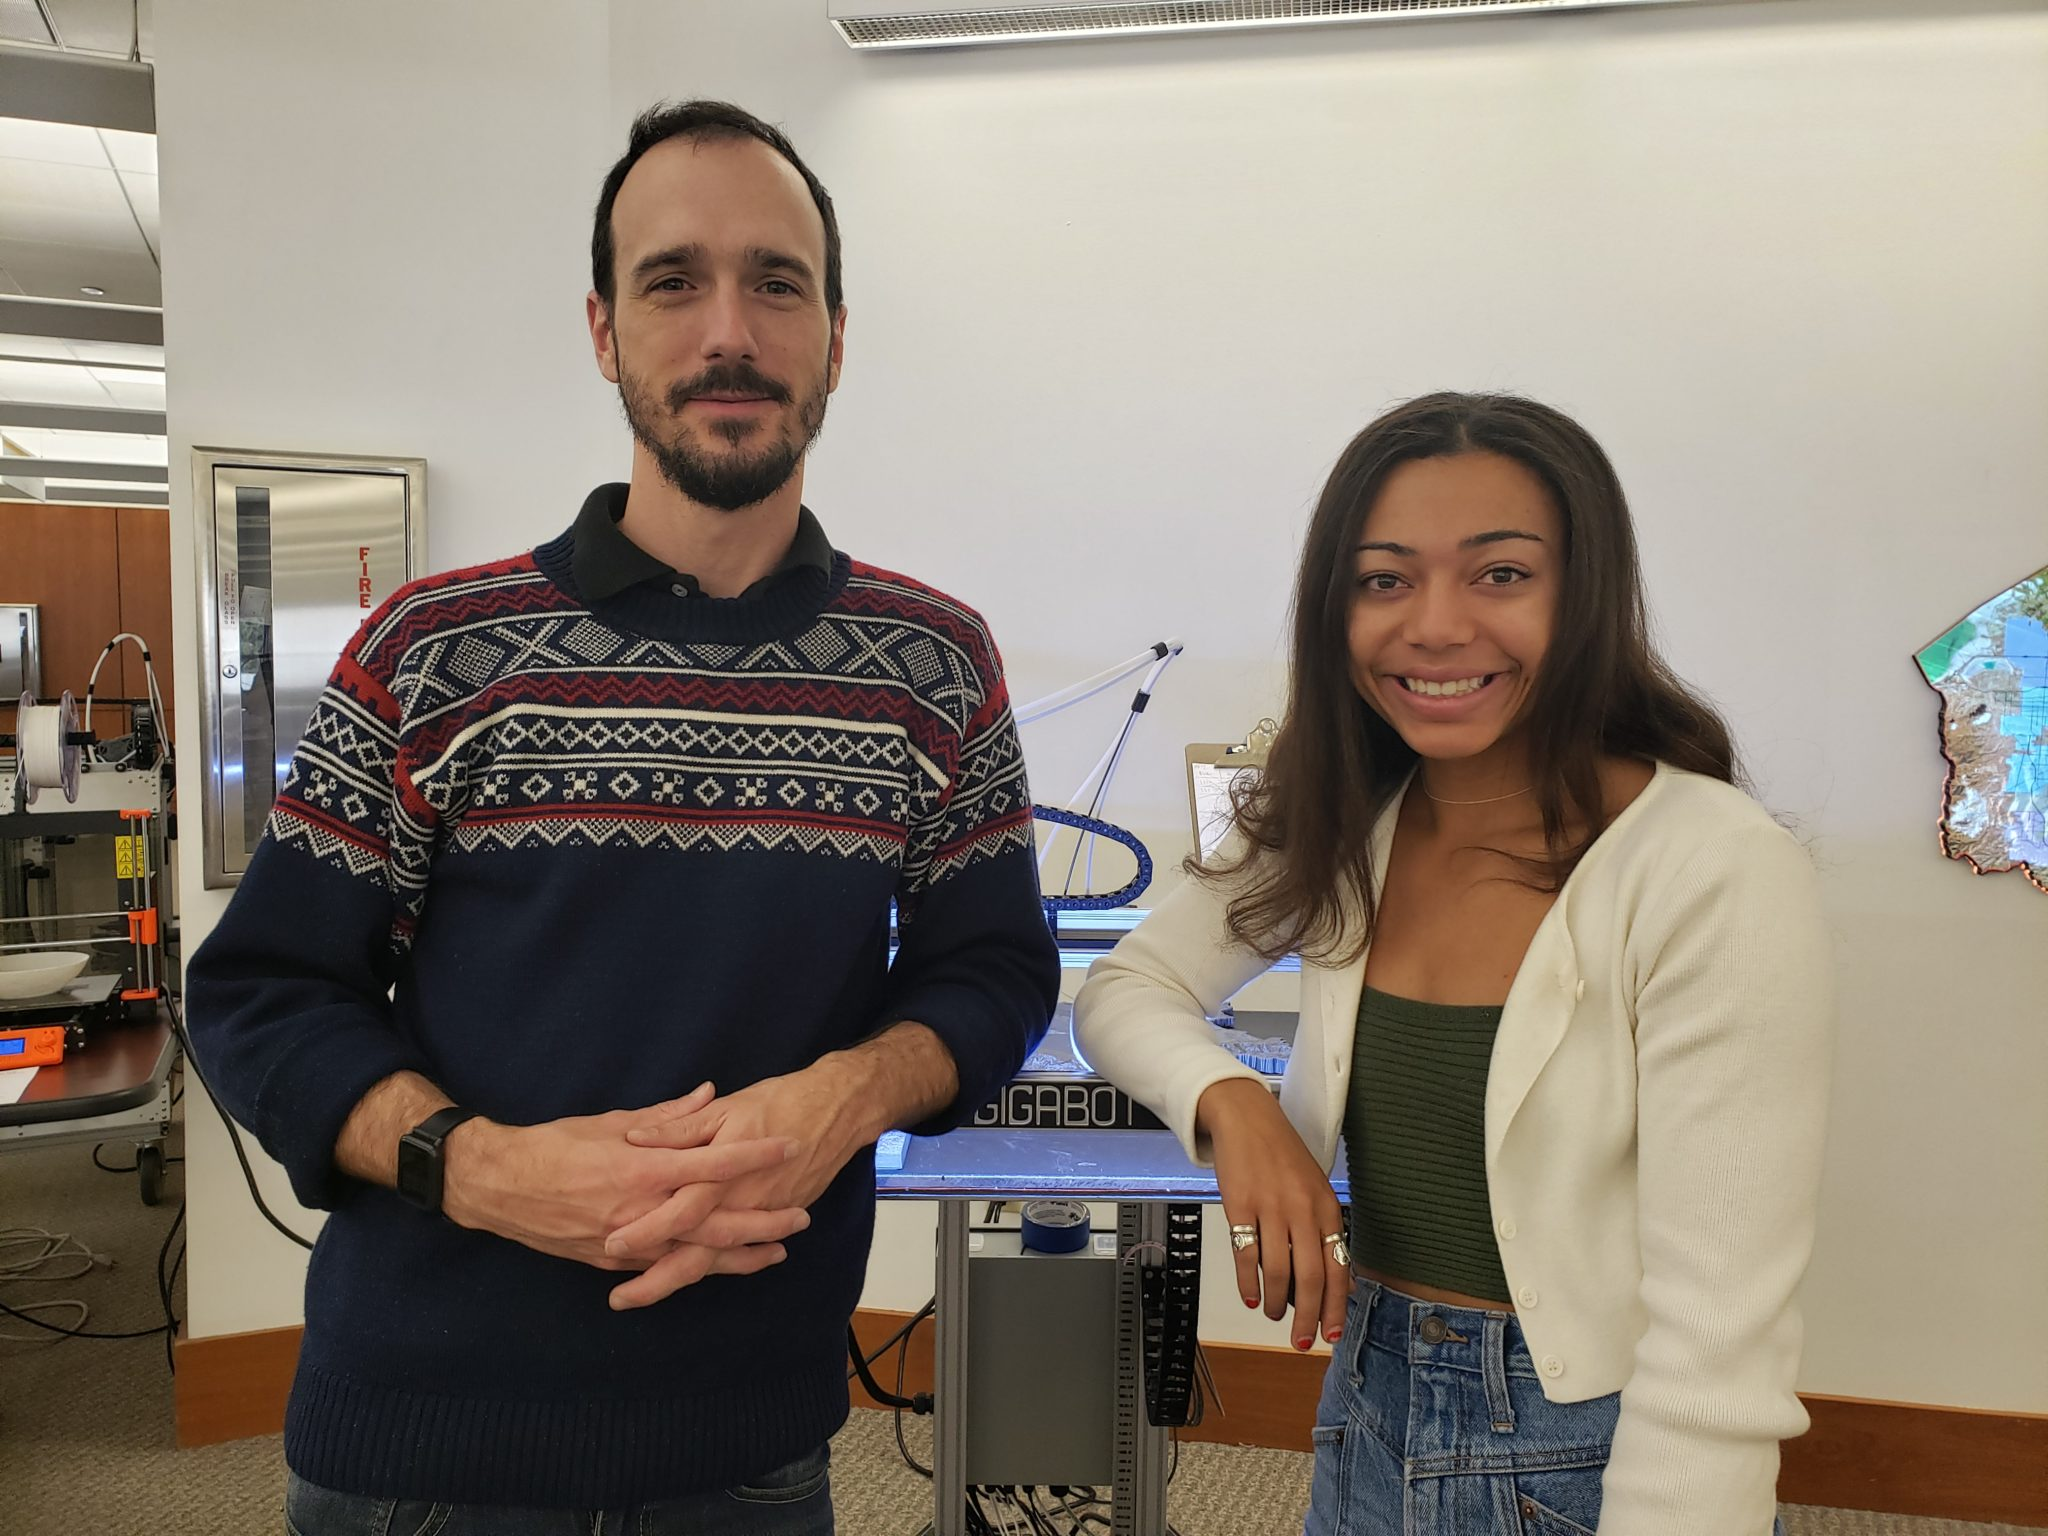 TJ Ferrill, Assistant Head of Creative Spaces, works with biology major and honors student Ayana Amaechi to create an item needed for research.